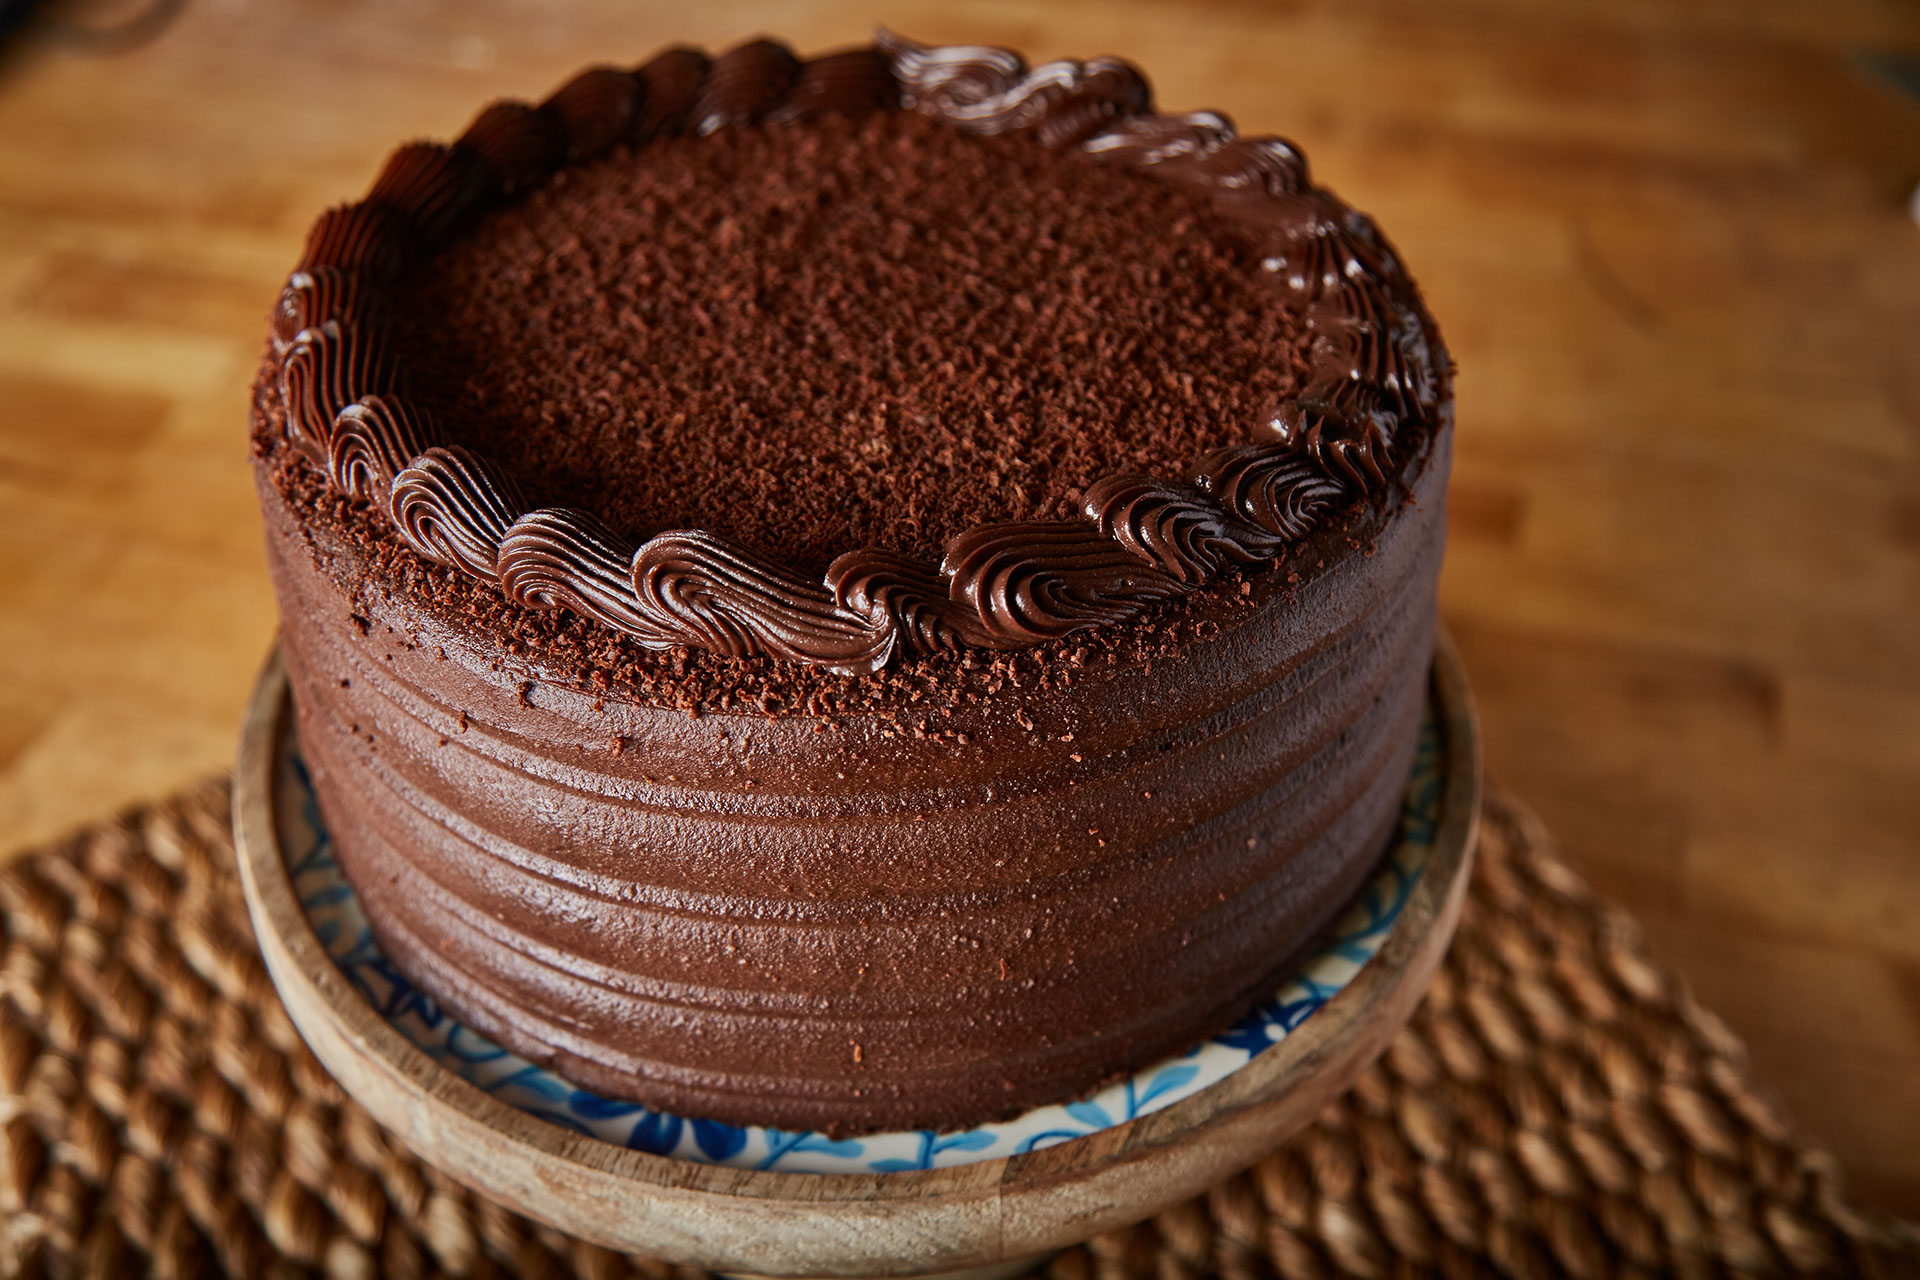 Colossal Chocolate Cake from Bakery Products Menu